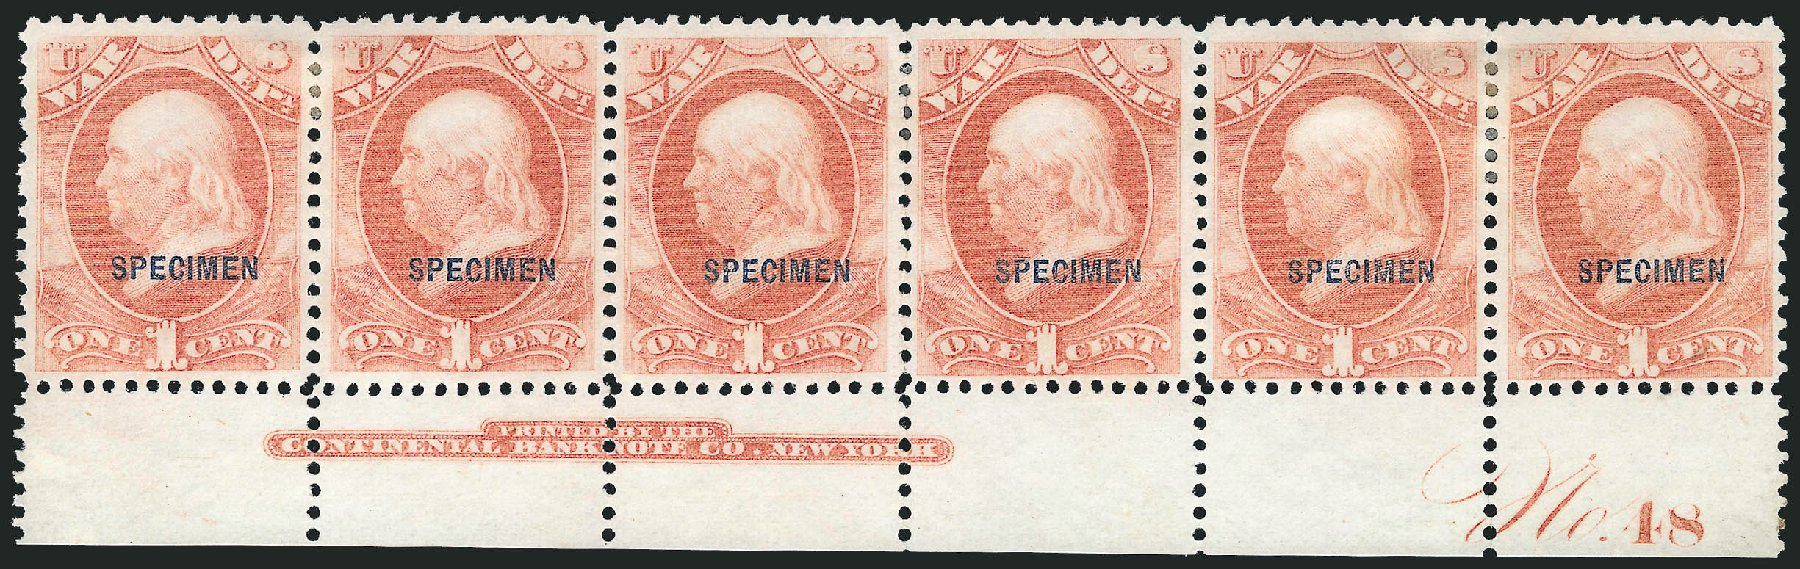 US Stamp Prices Scott Catalog #O83 - 1c 1873 War Official. Robert Siegel Auction Galleries, Mar 2015, Sale 1095, Lot 656